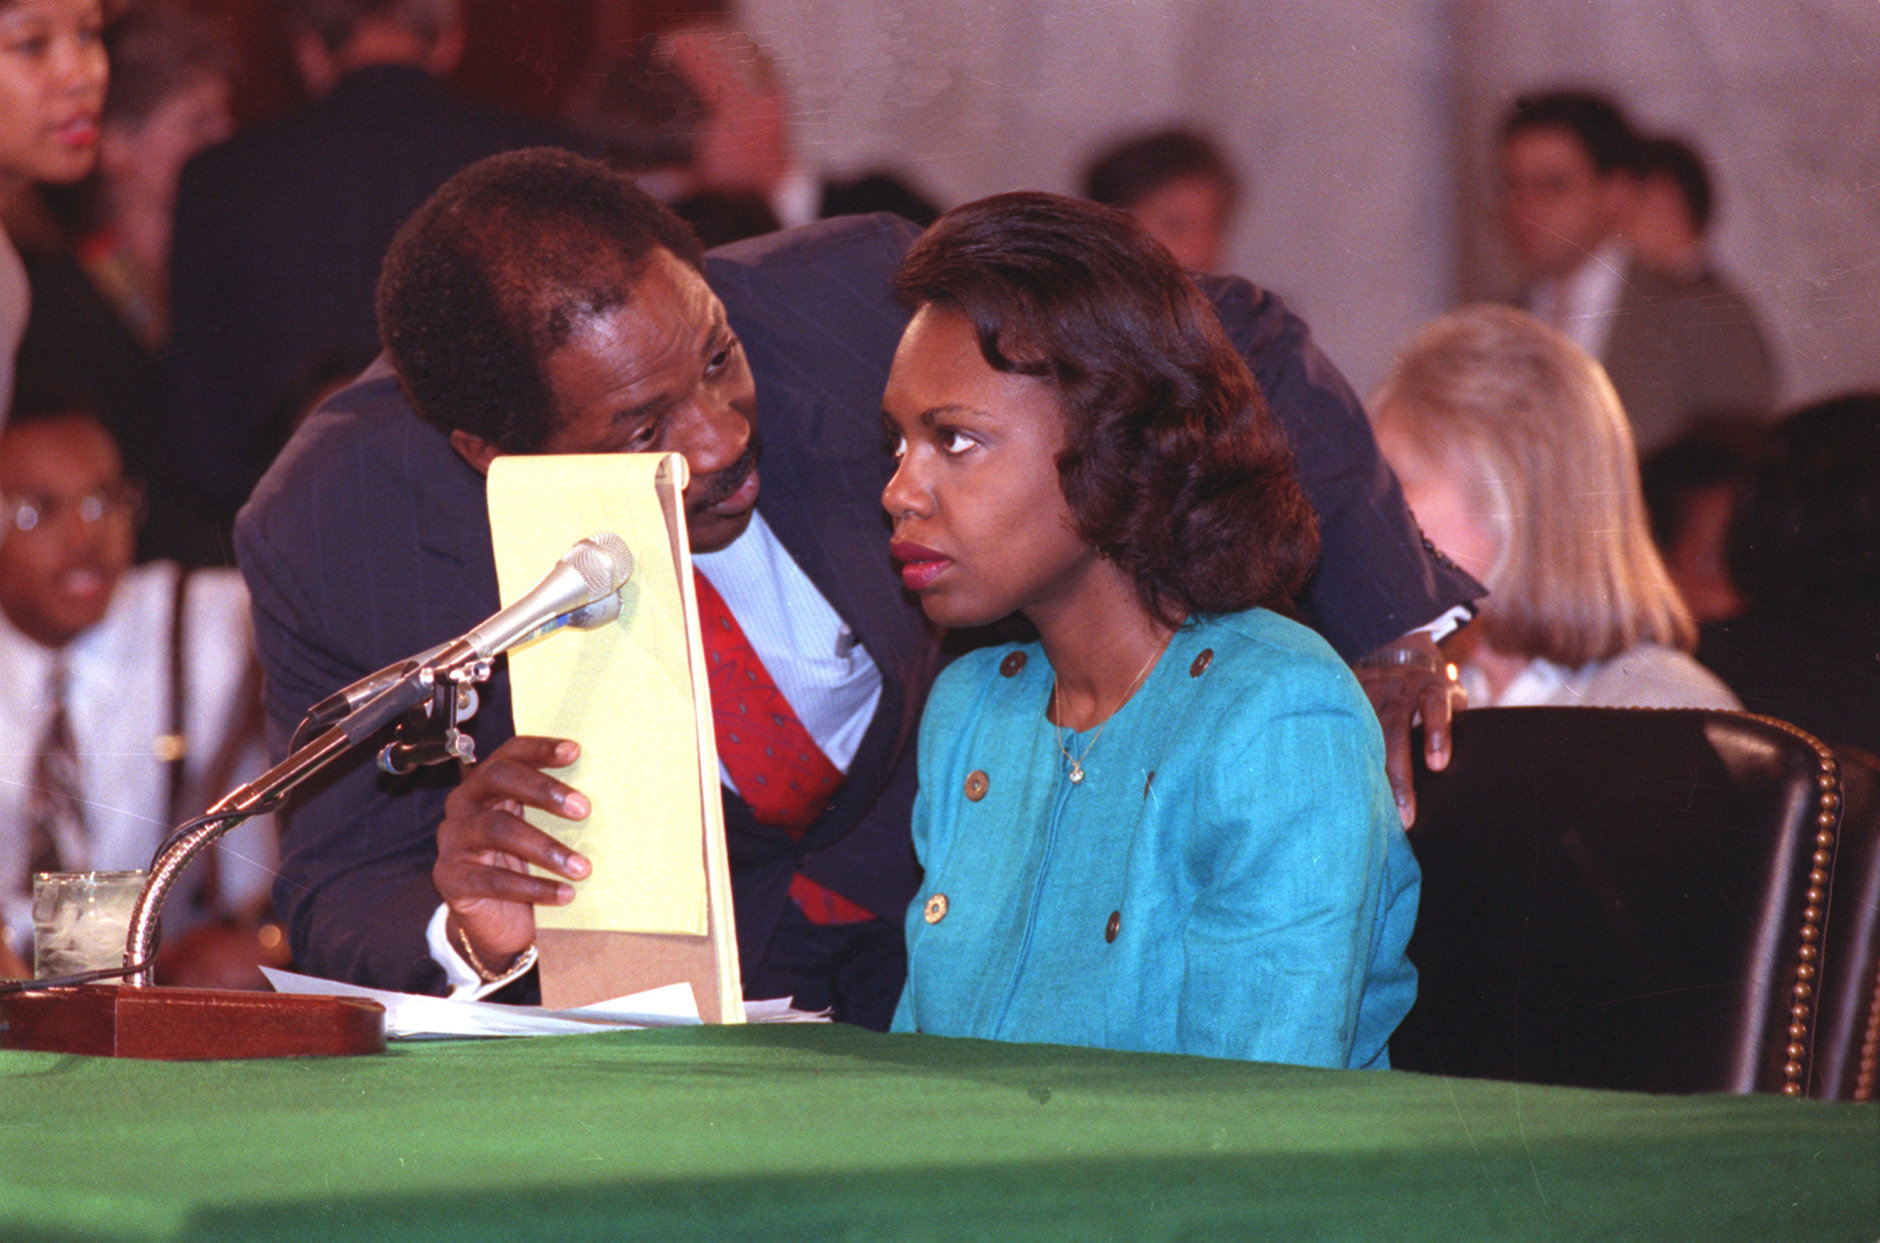 University of Oklahoma law professor Anita Hill receives councel from Charles Ogeltree while testifying before the Senate Judiciary Committee on Capitol Hill in Washington, D.C., Friday, Oct. 11, 1991.  (AP Photo/Greg Gibson)